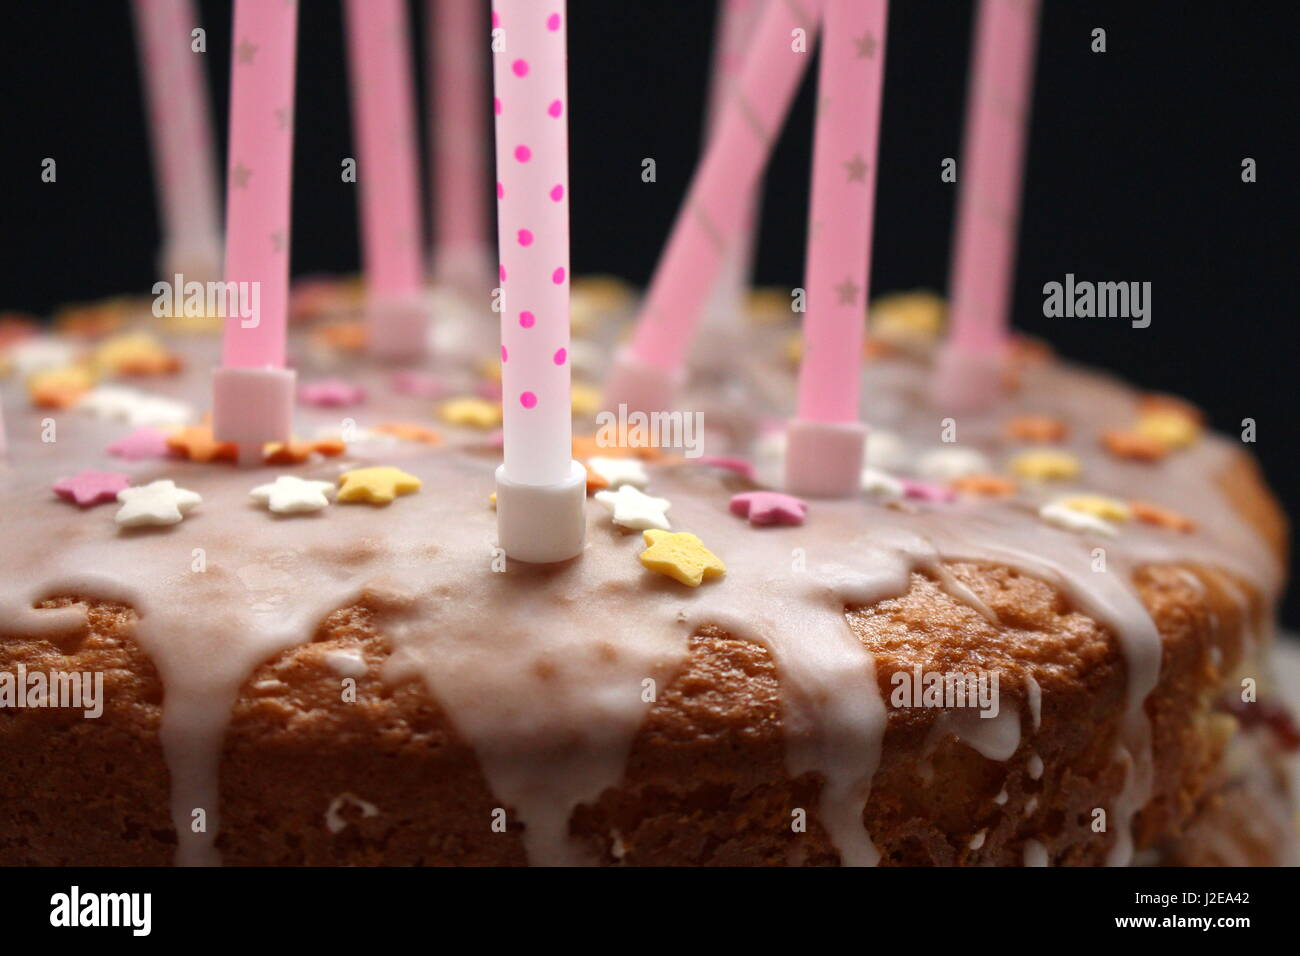 Close up view of a celebration cake, with icing, hundreds and thousands decoration, and pink candles, on a black - Stock Image